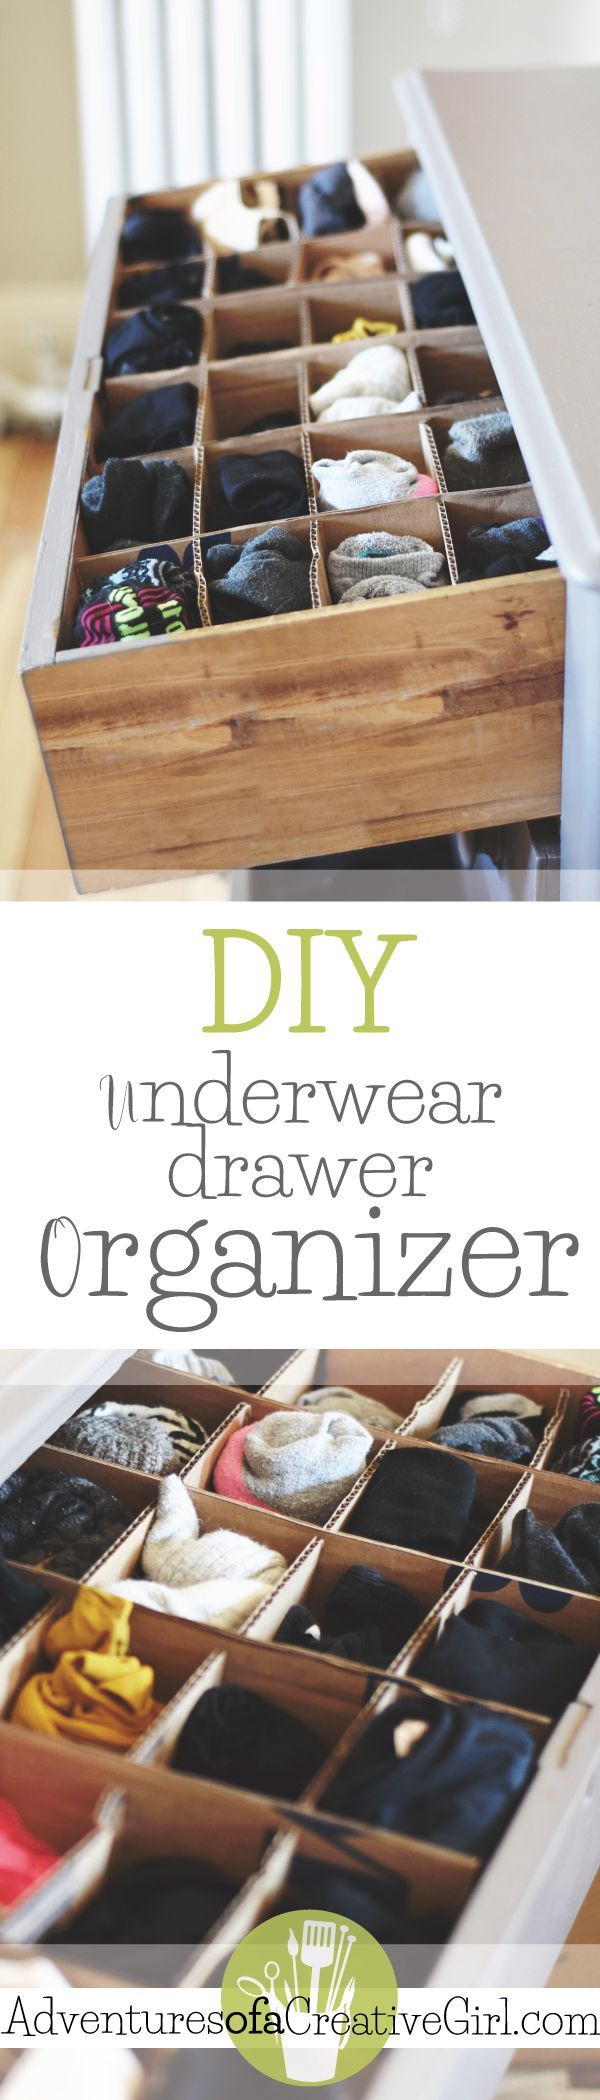 Learn how to make your own underwear drawer organizer for FREE with materials you have around the house! Step-by-step instructions with pictures.